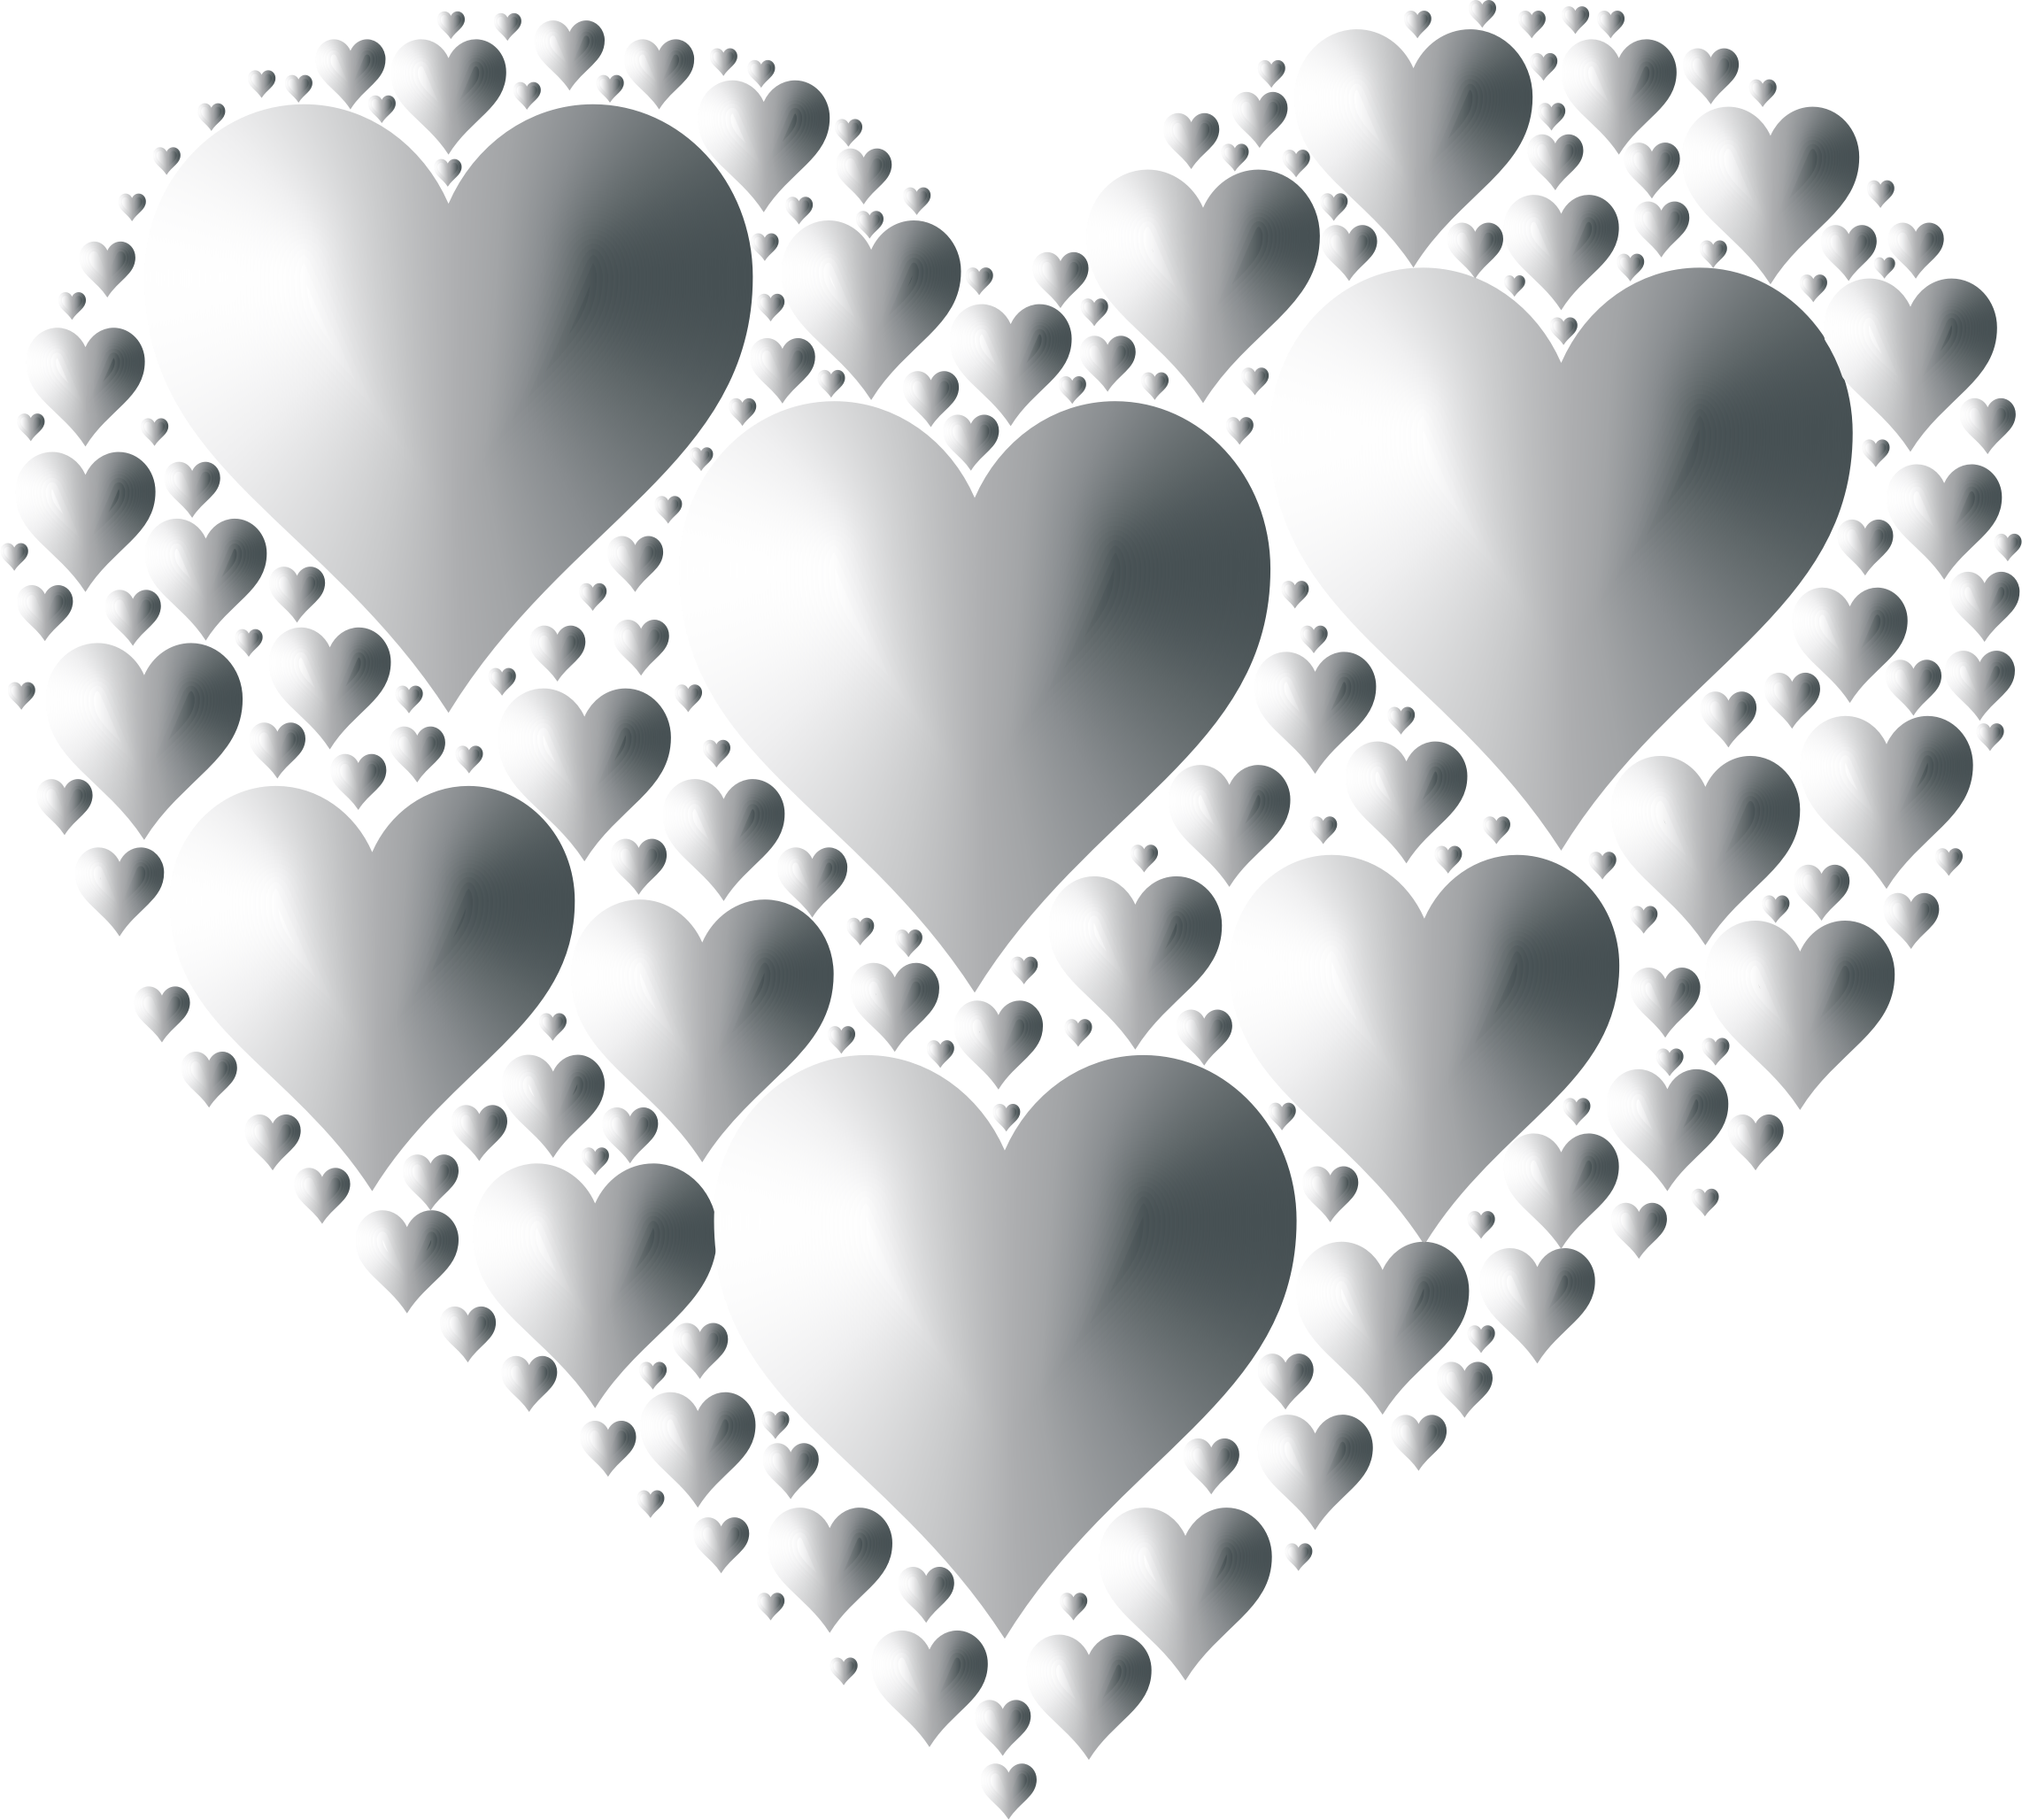 Clipart - Hearts In Heart Rejuvenated 6 No Background graphic royalty free download